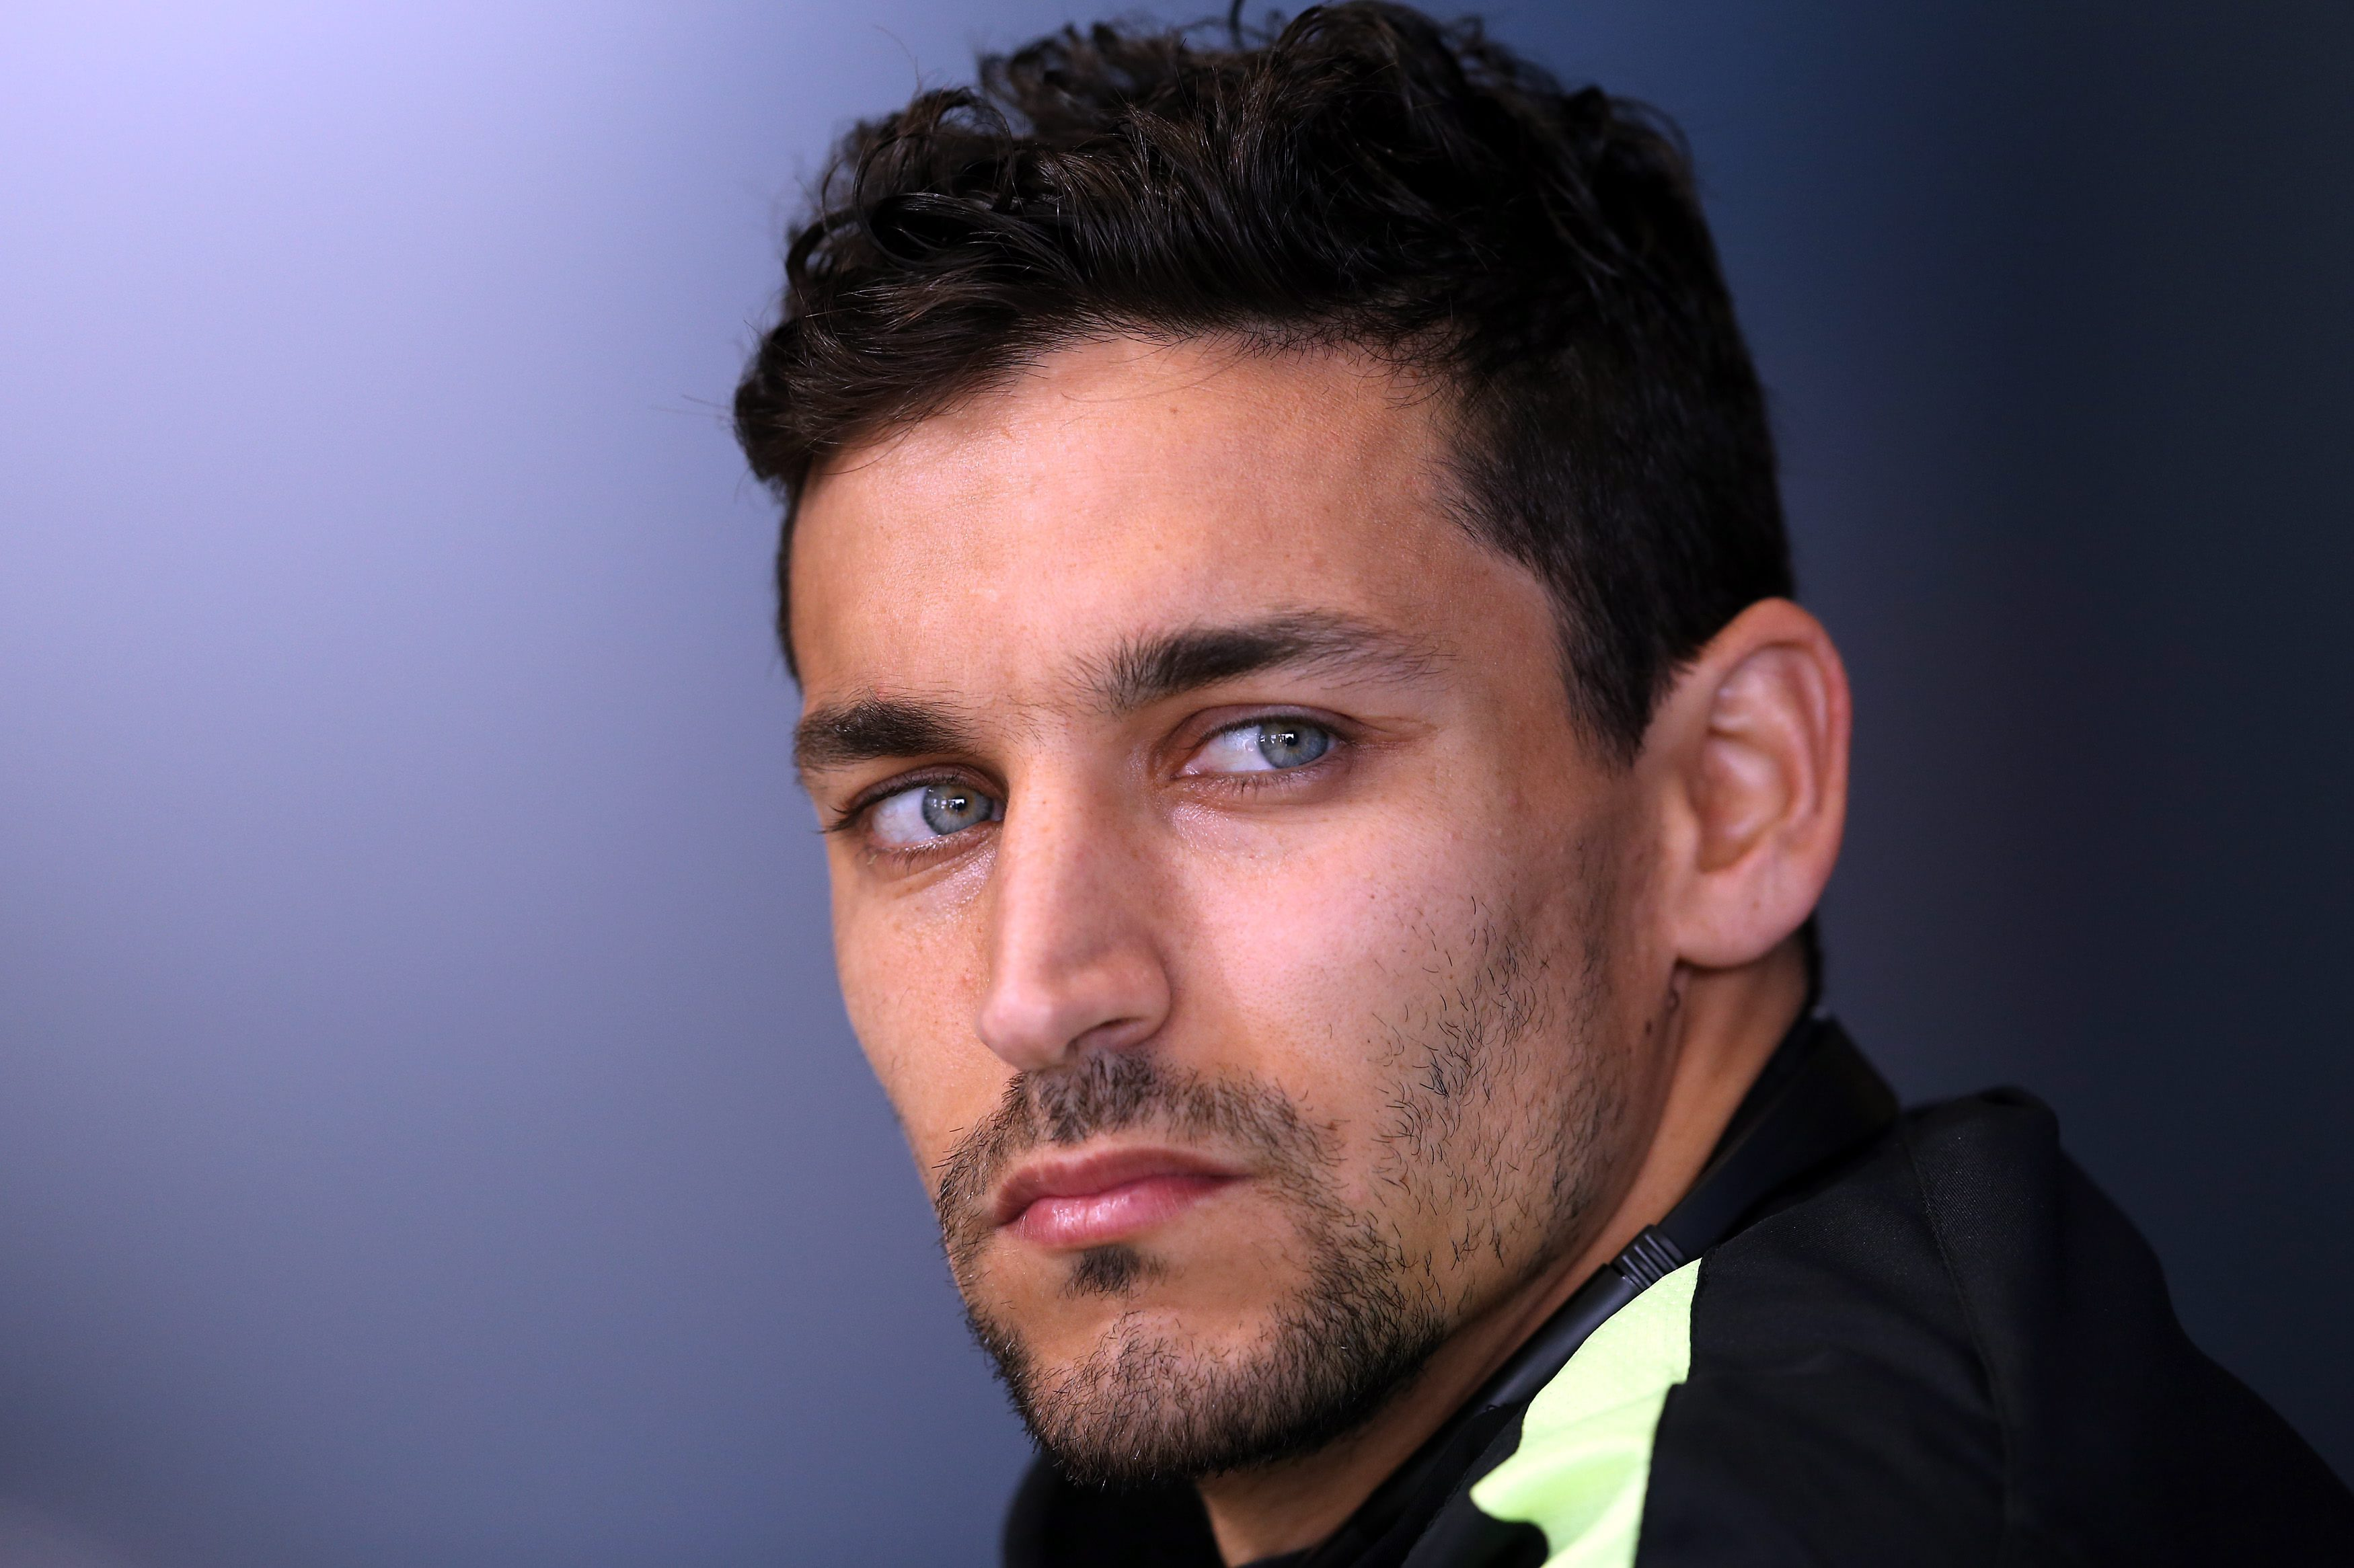 Navas has grown leaps and bounds since his last Europa League win.